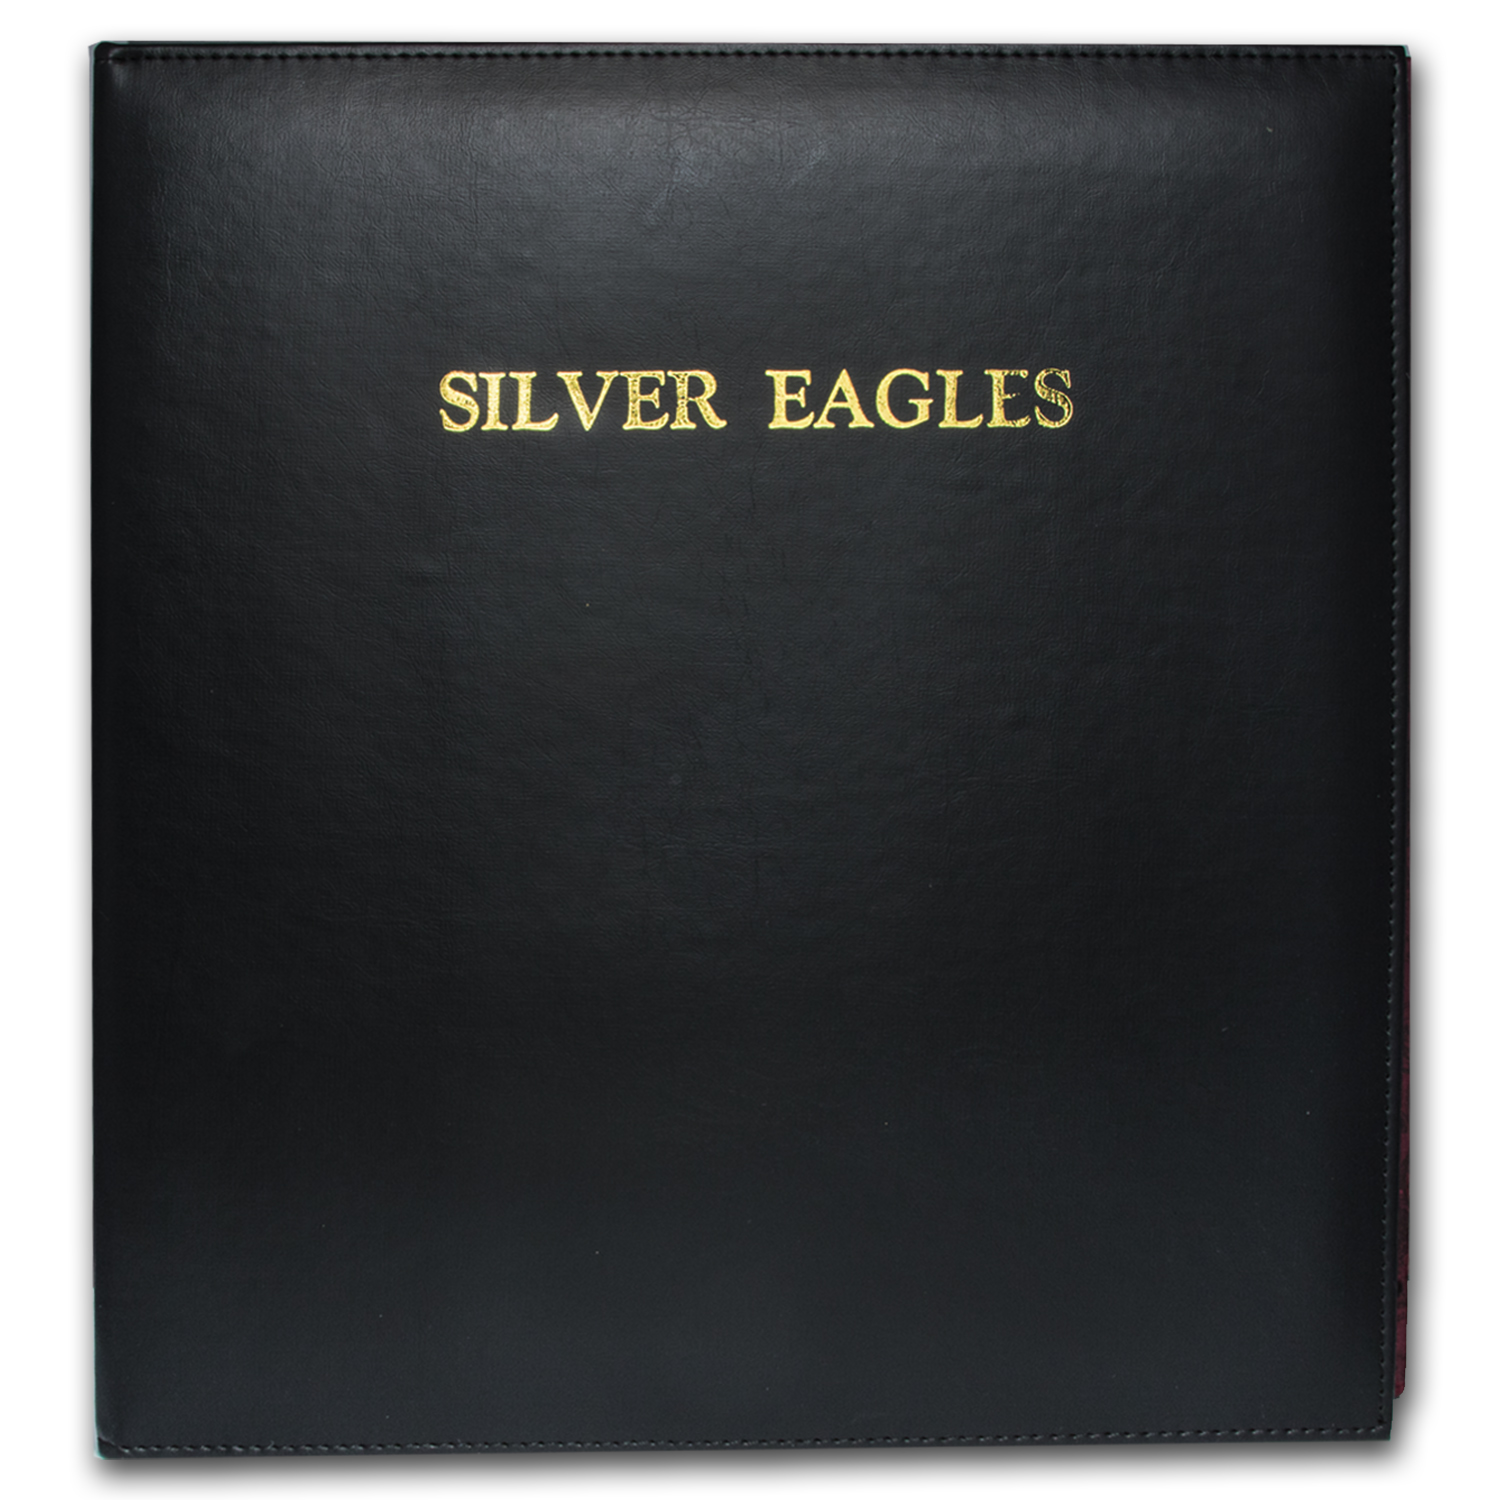 CAPS Album for Silver Eagle Date Set (1986-2017)